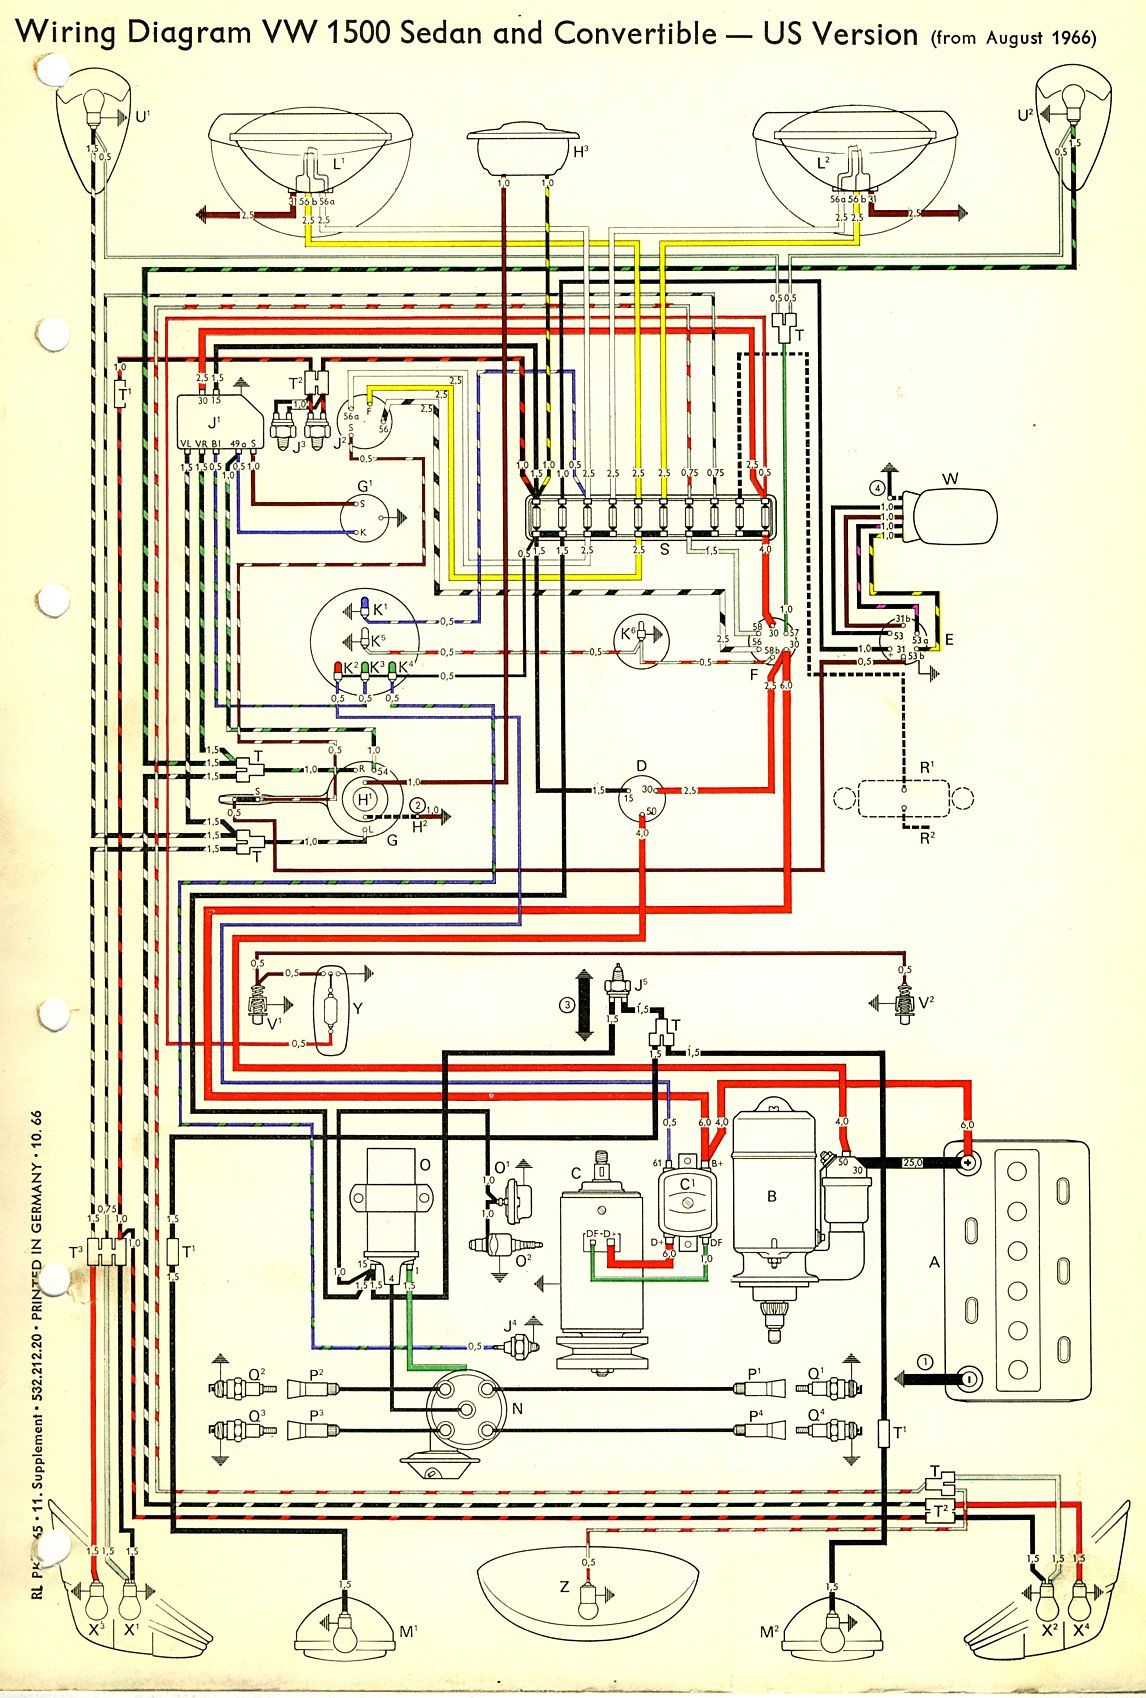 1adf990c0efb617c789fdd21338448b0 1967 beetle wiring diagram (usa) thegoldenbug com best 1967 vw vw bug wiring diagram at arjmand.co